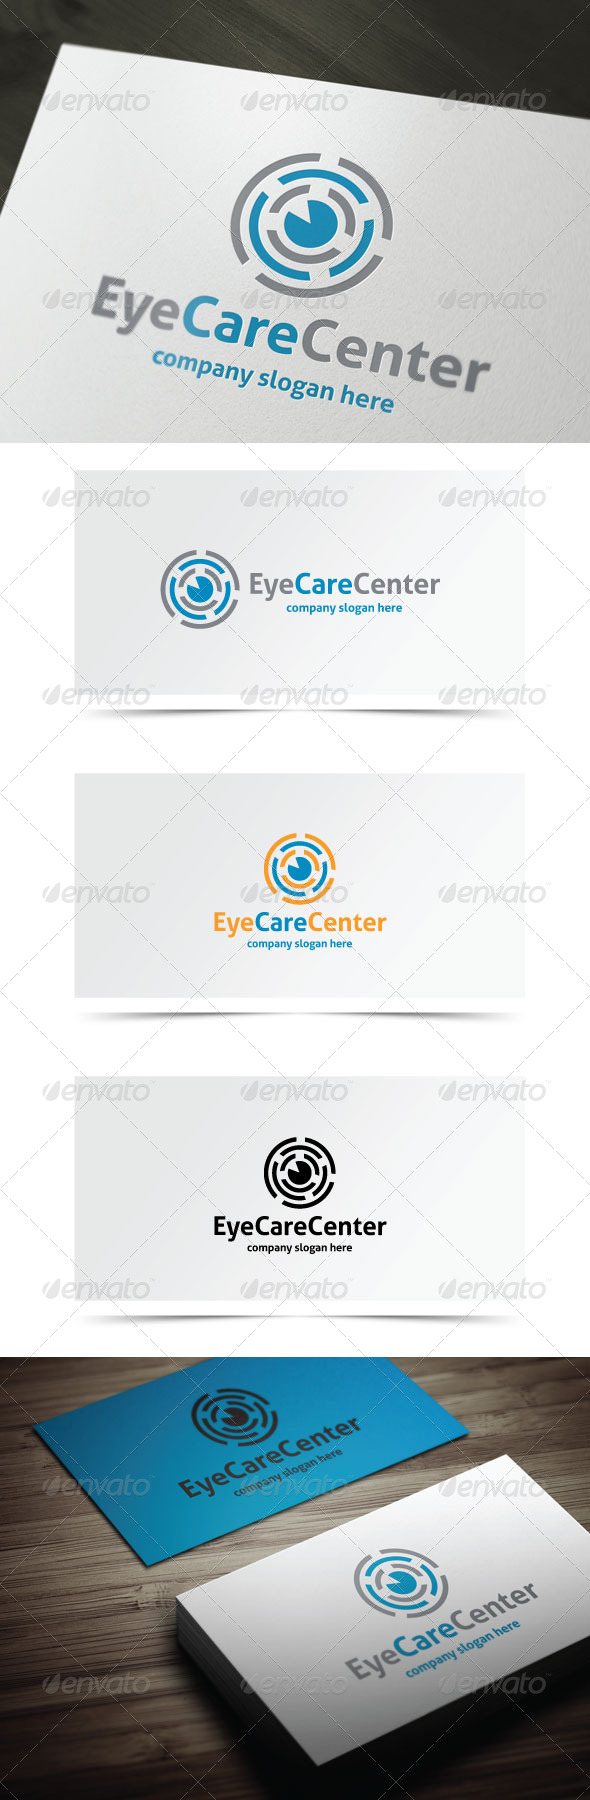 GraphicRiver Eye Care Center 8103044